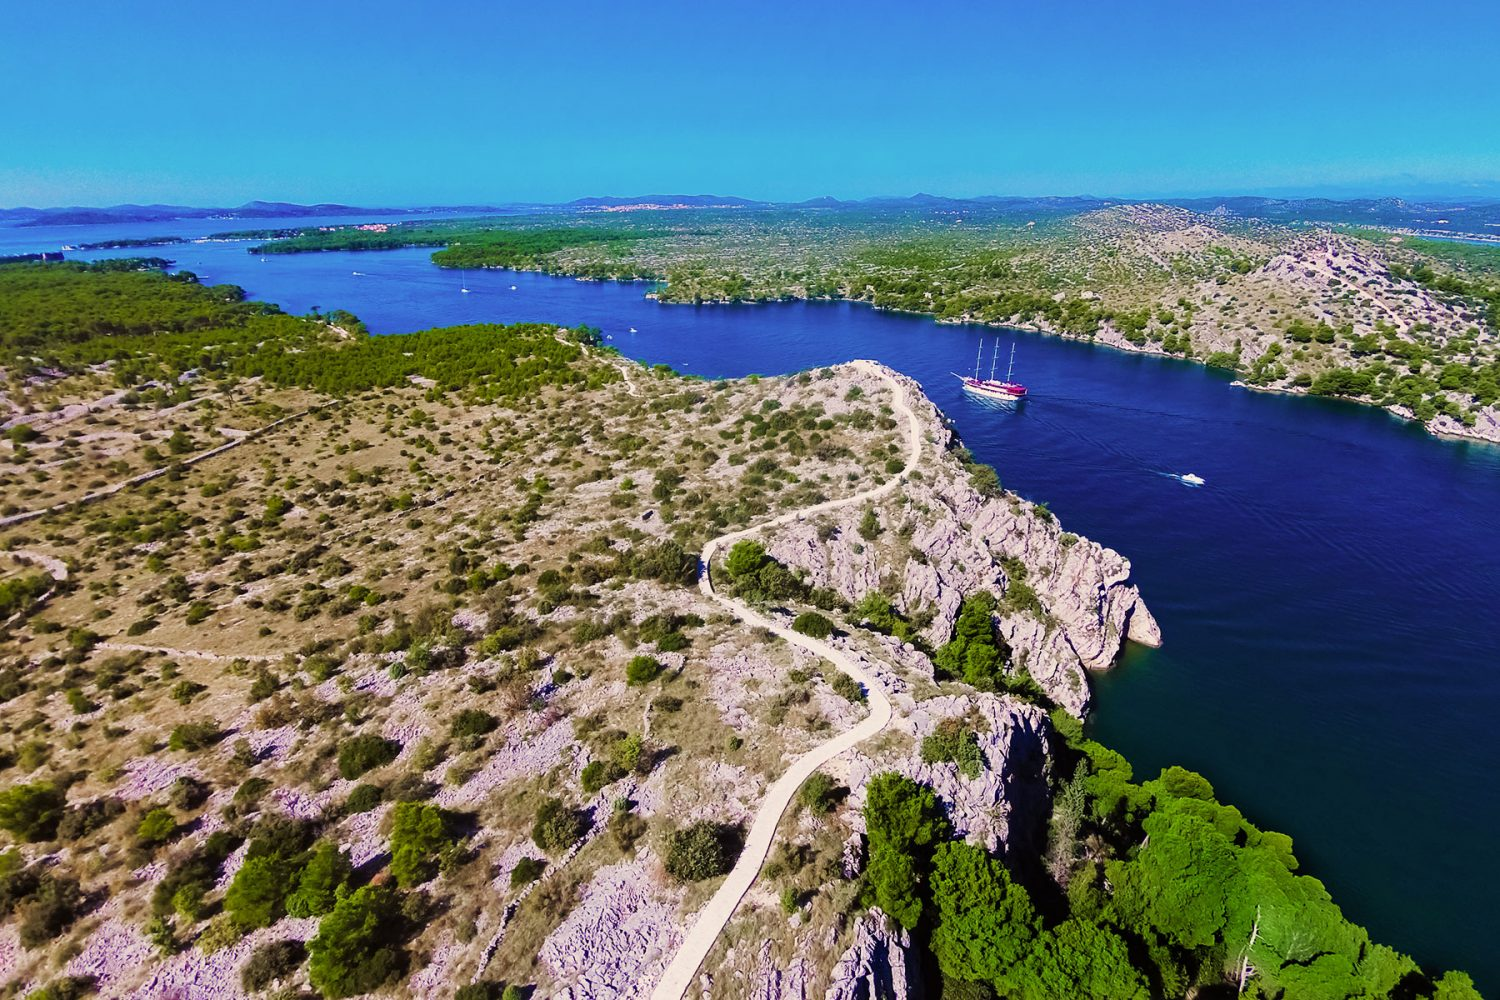 Archipelago Tours Krka Private Boat tour - Krka Channel Cruise Private Boat Tour photo of St Anthony Channel with St Nicholas fortress i the background